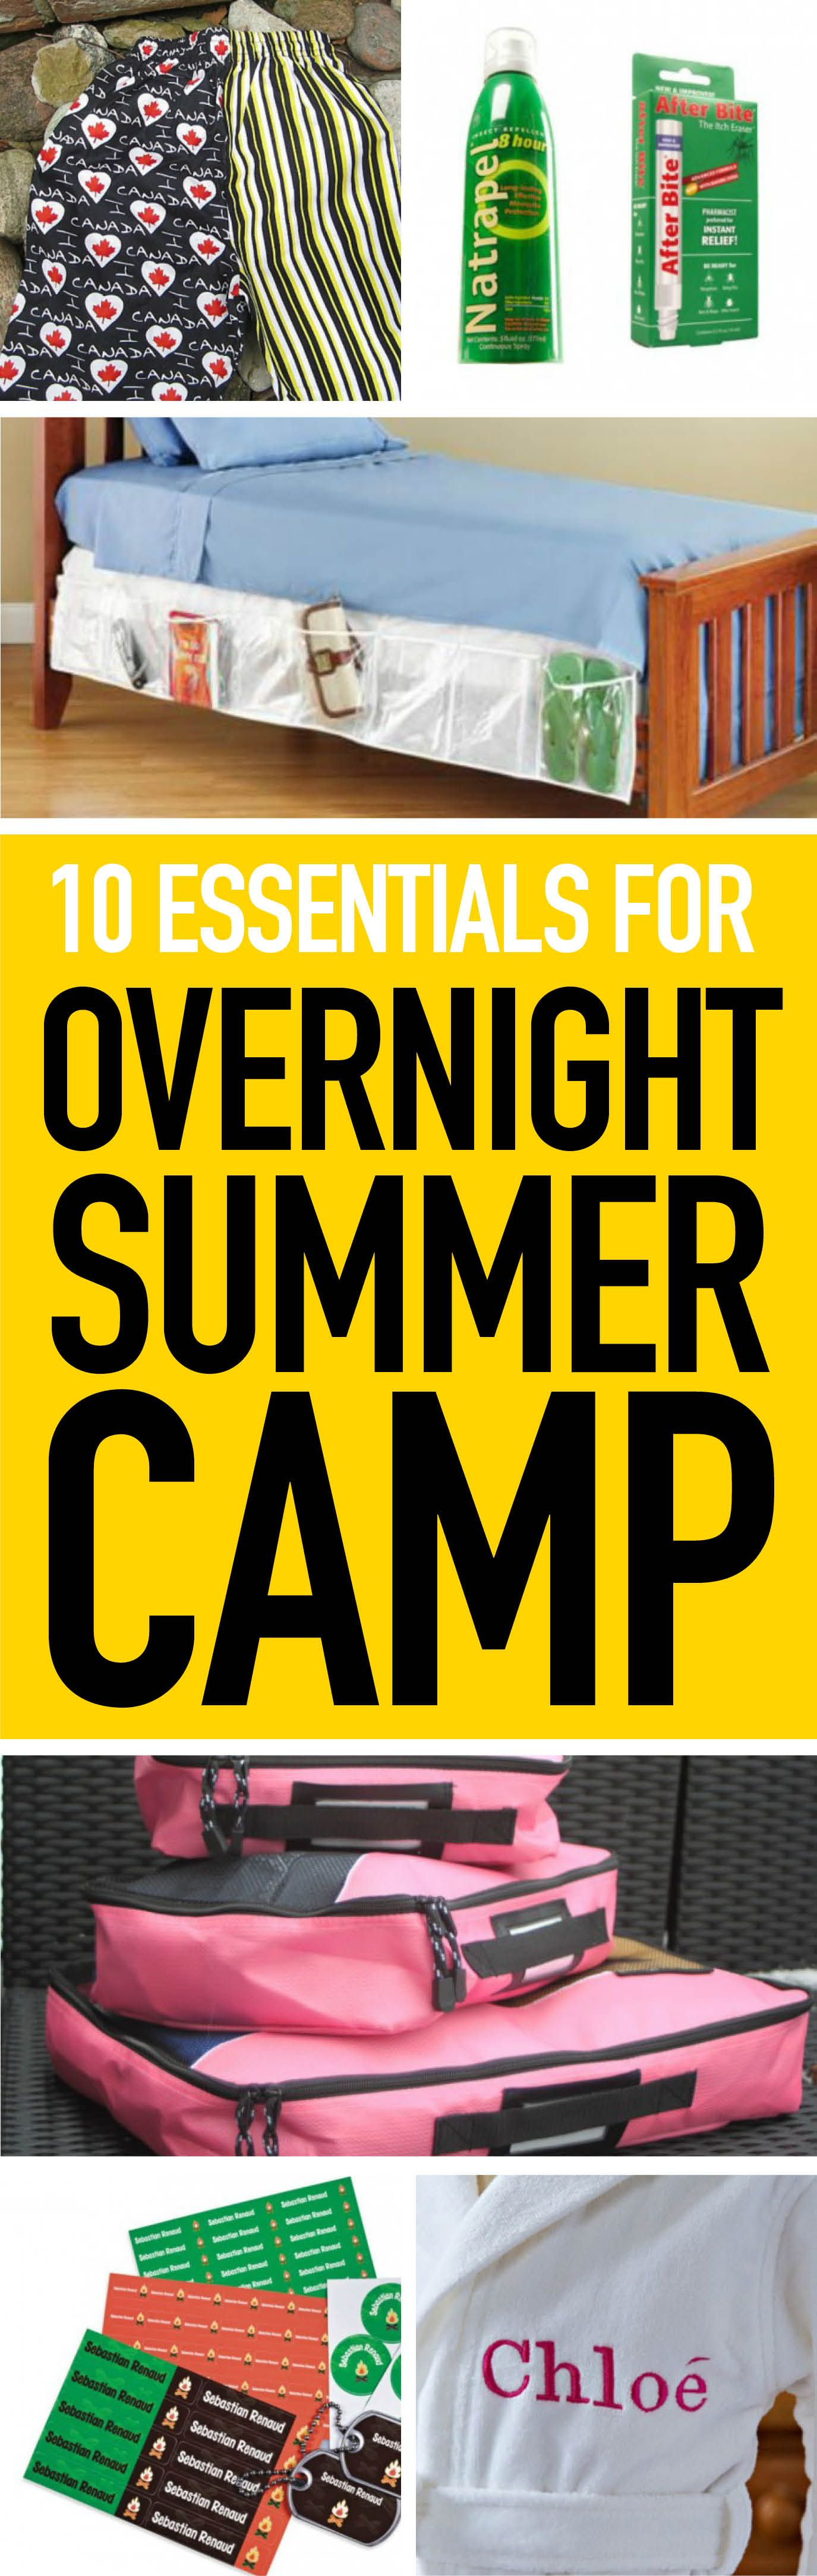 Overnight Camping Essentials Overnight Camps Bug Bite And Forget - 10 amazing summer camps for adults in canada